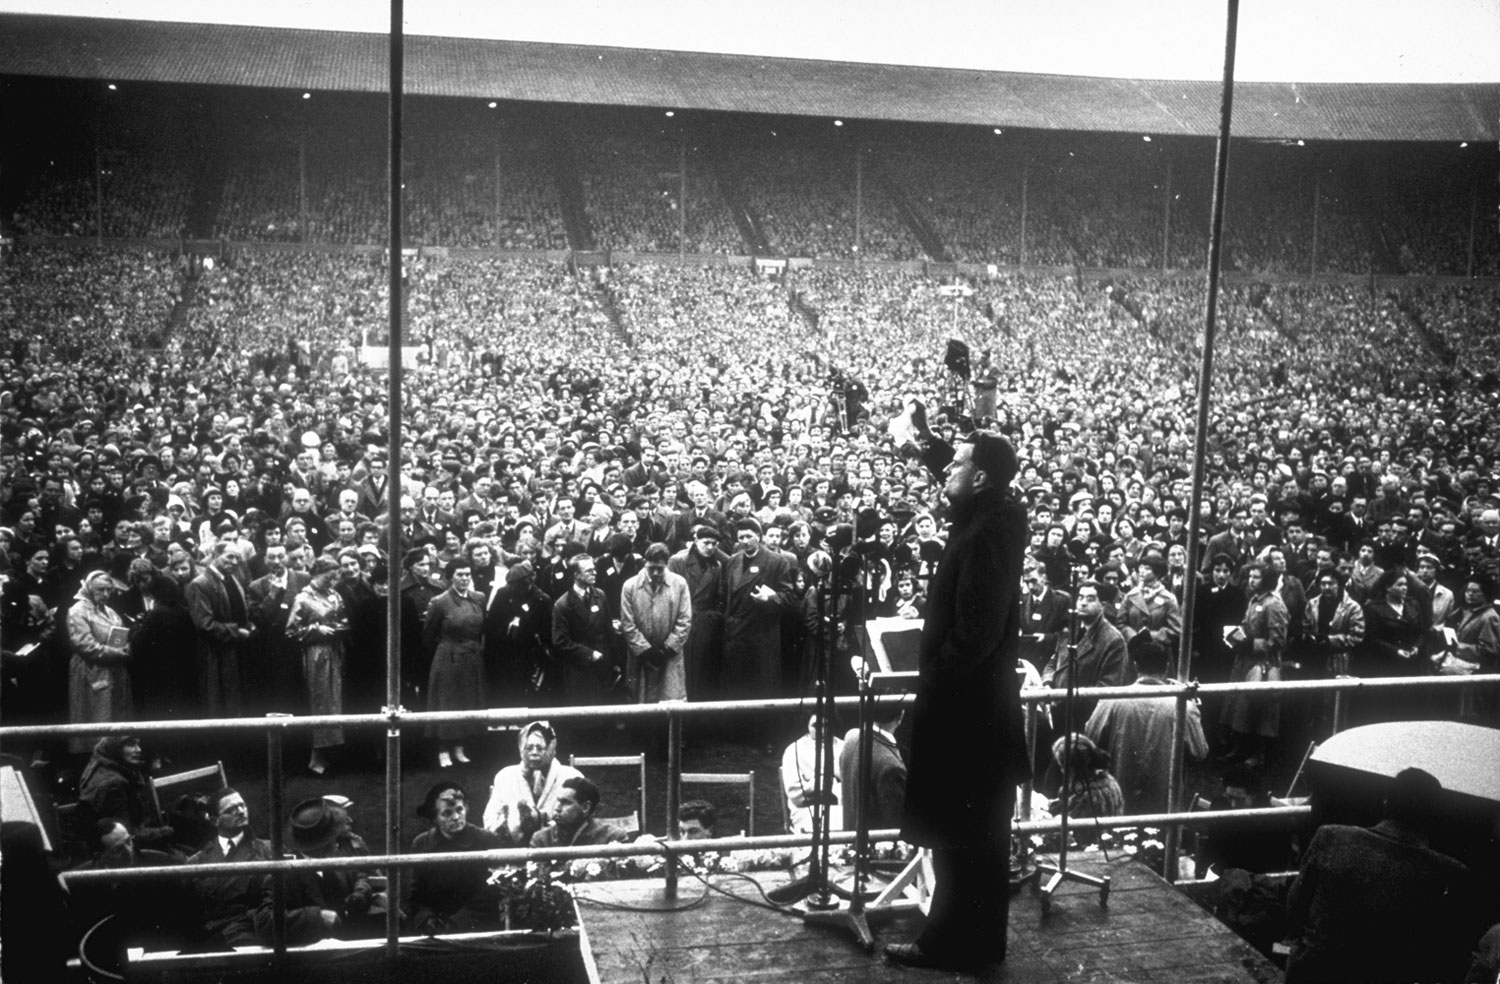 The Word                                                              Graham waves a handkerchief while standing at a podium during a service in front of a crowd at Wembley Stadium.